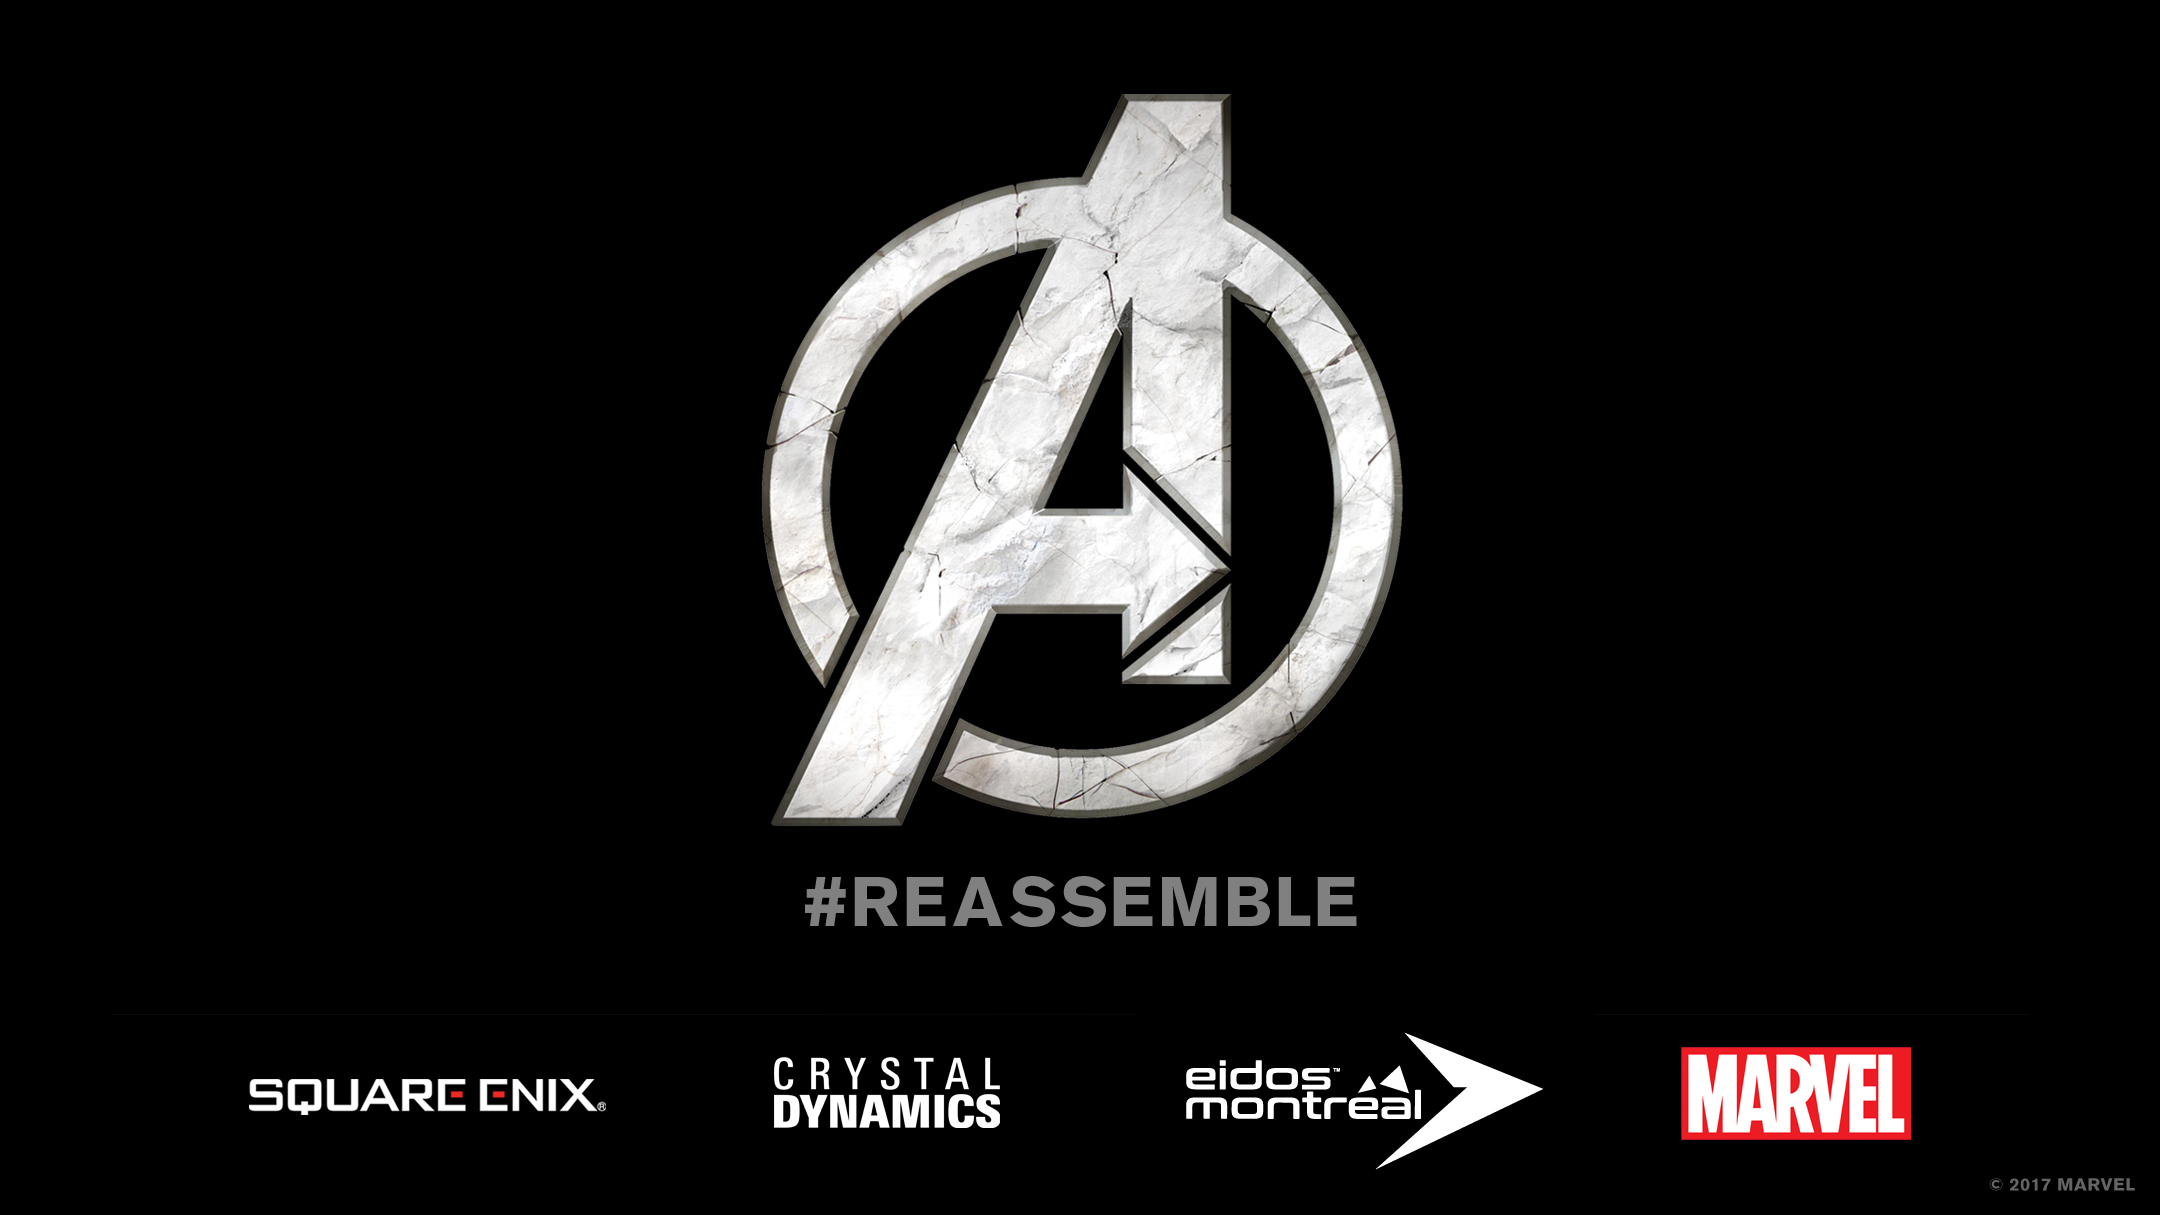 Square Enix Snags Marvel Licensing Agreement - Big Announcement Finally Revealed After Yesterday's Teaser